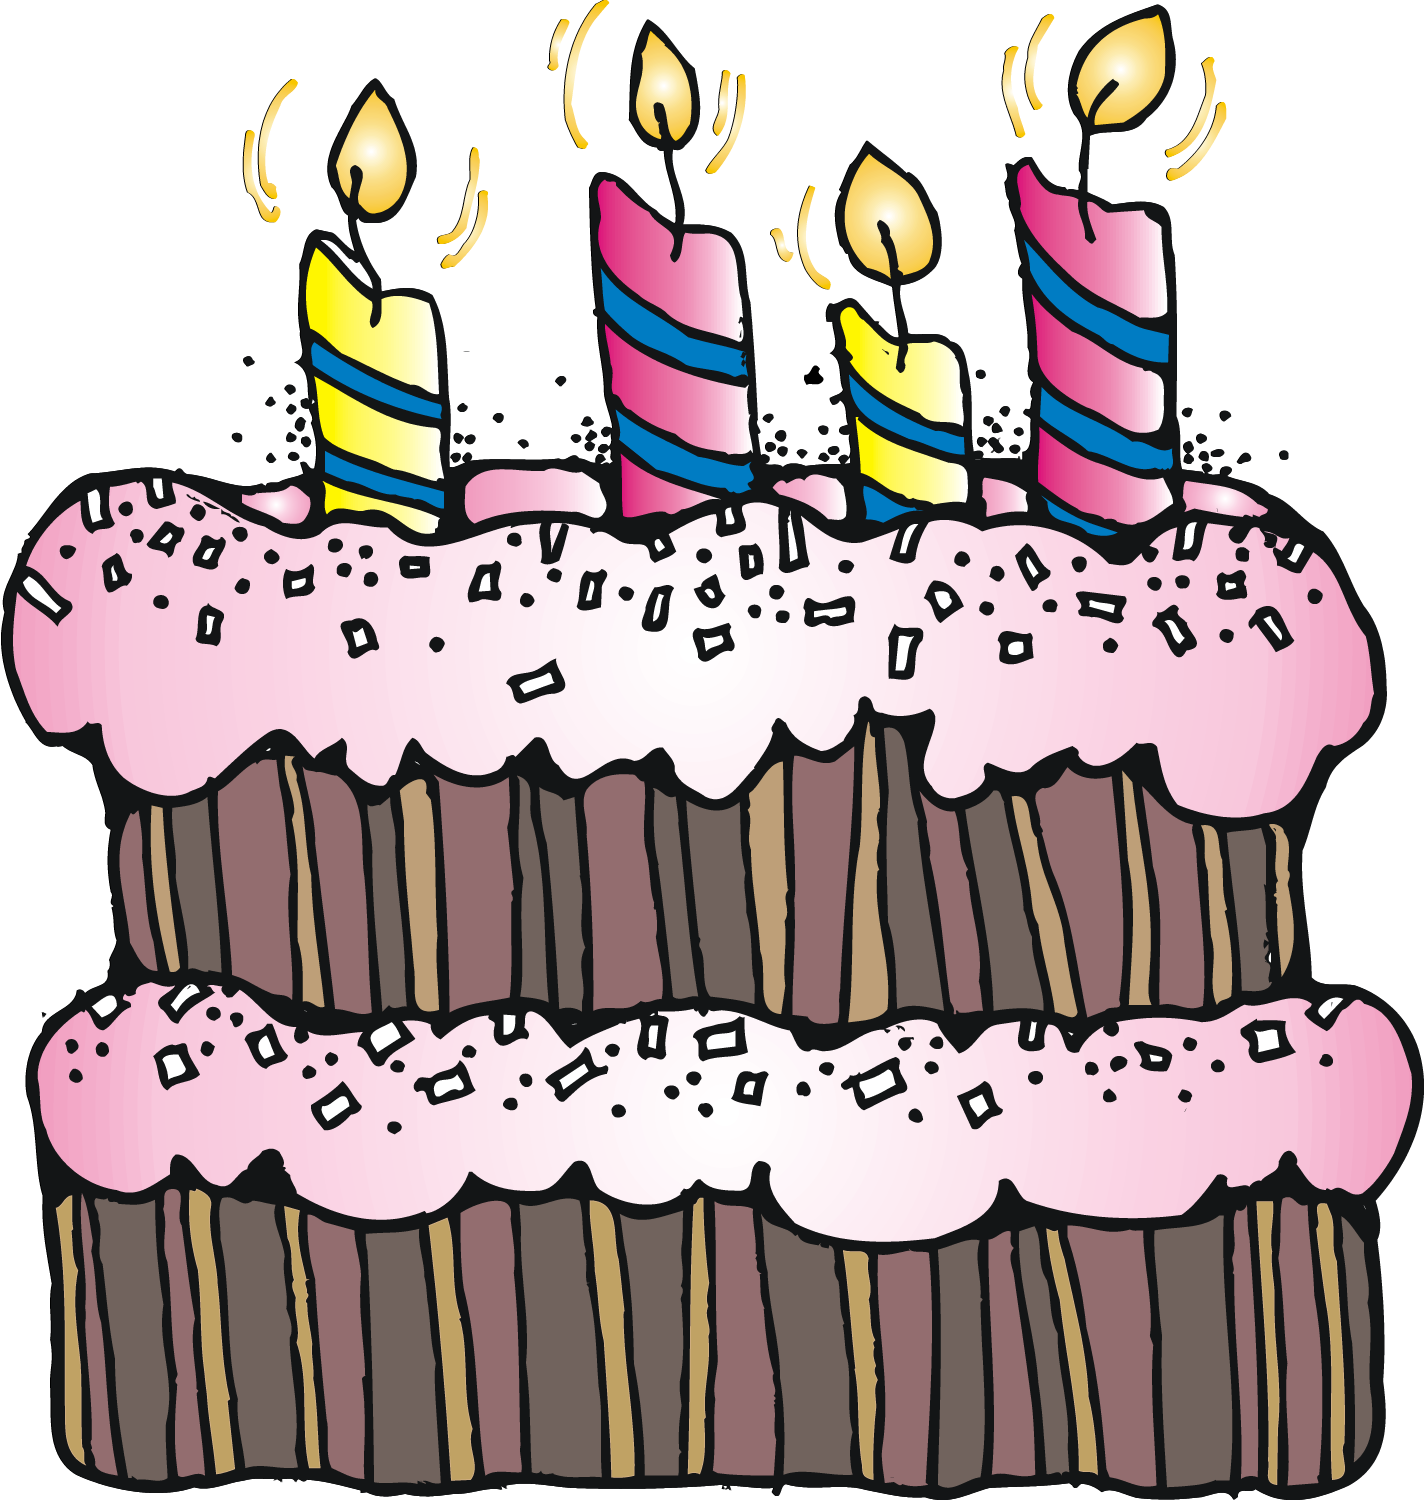 Happy birthday clipart cake banner royalty free stock Pin by Laura Bosque on Rutines i rètols aula | Pinterest | Clip art ... banner royalty free stock